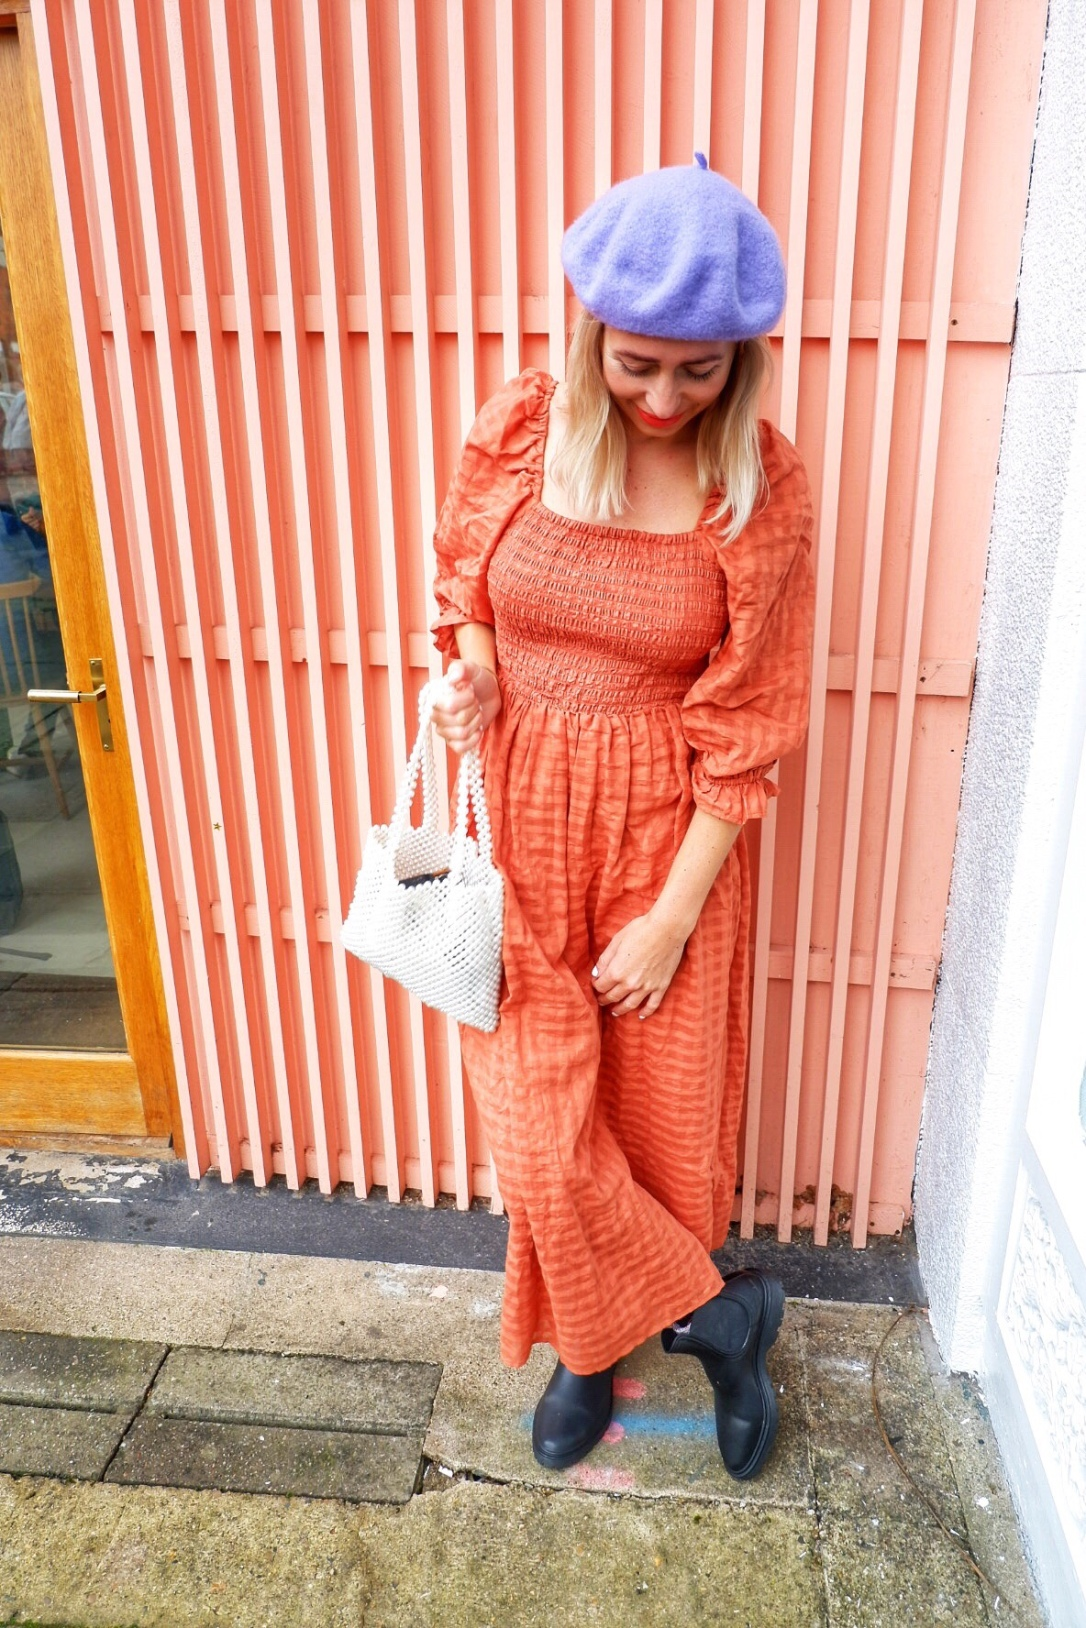 ASOS orange prairie dress first pregnancy